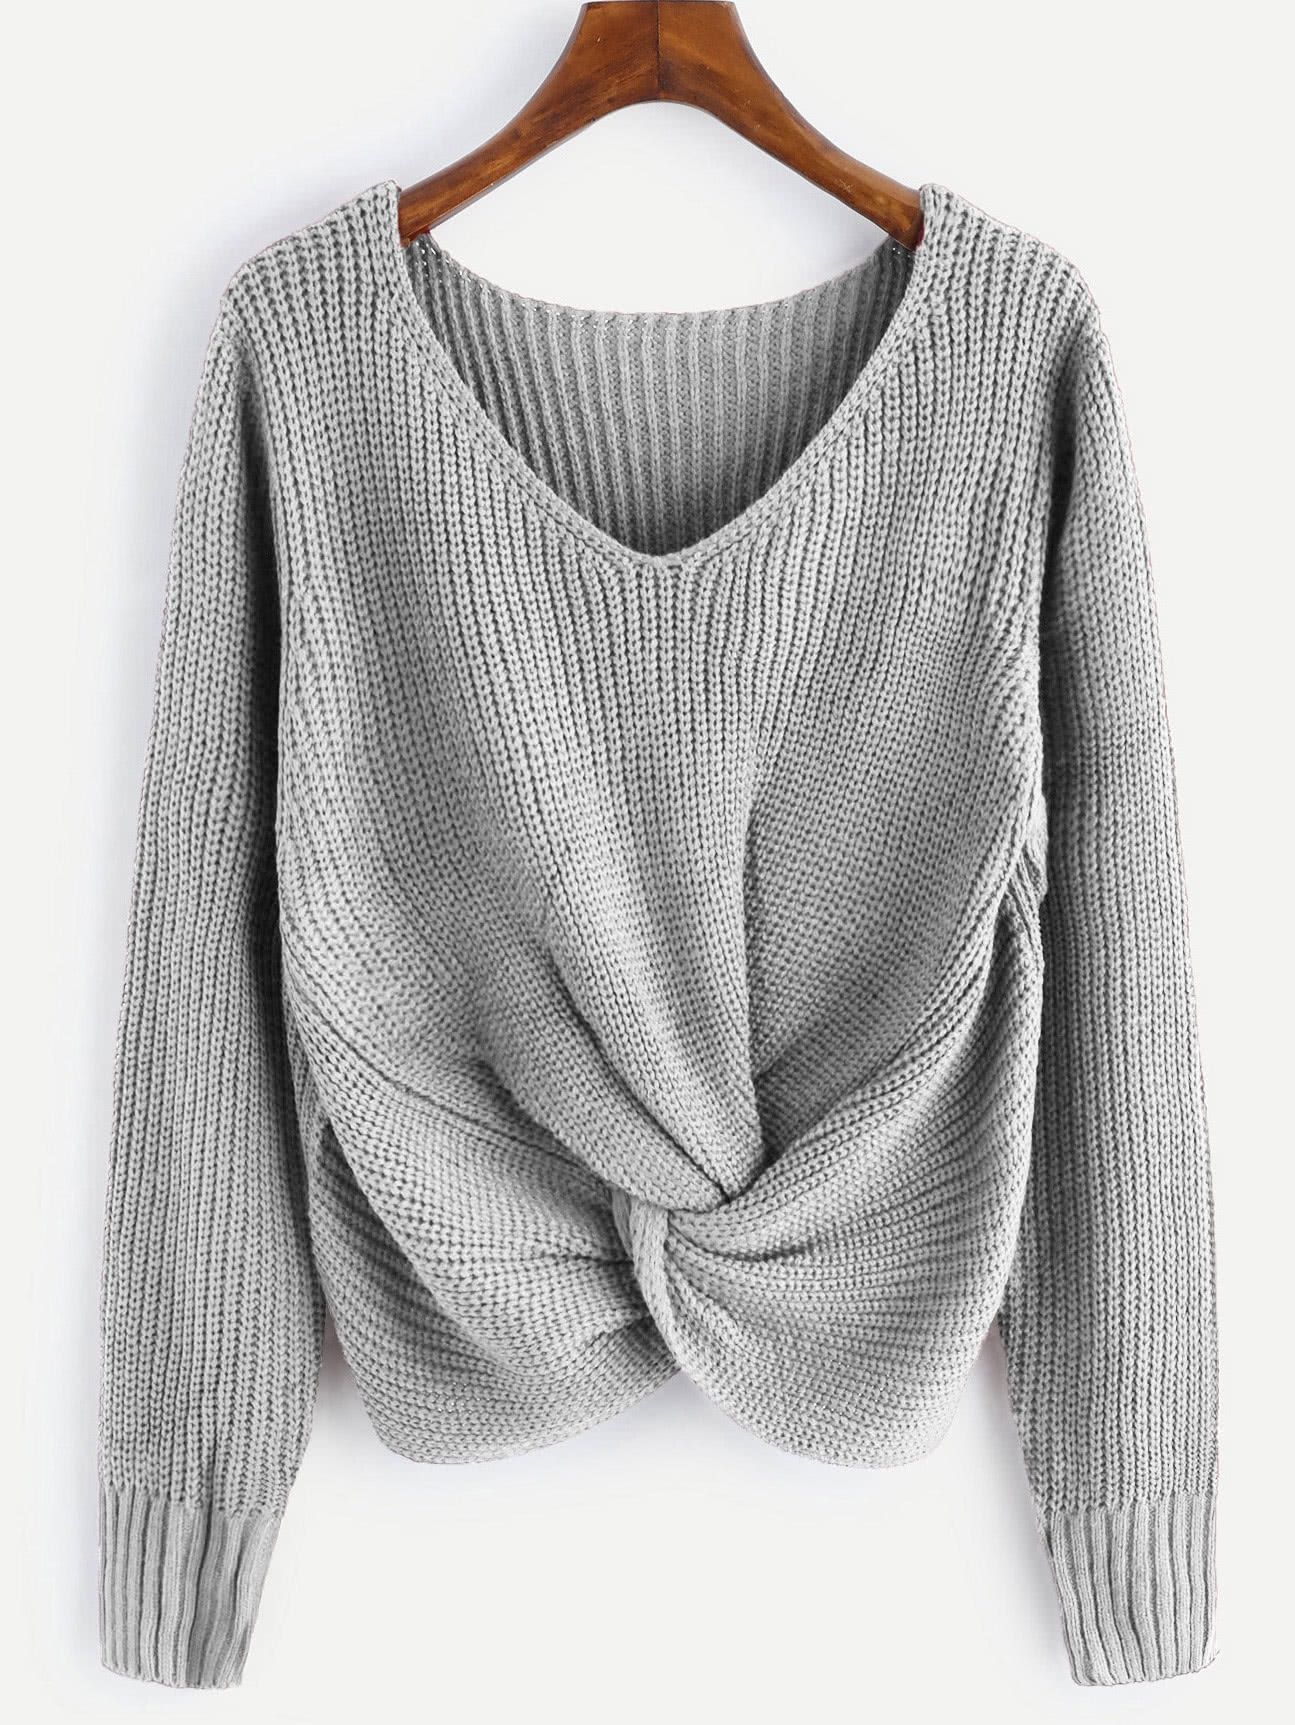 9a025c56428bb9 Shop V-neckline Twist Front Sweater online. SheIn offers V-neckline Twist  Front Sweater   more to fit your fashionable needs.